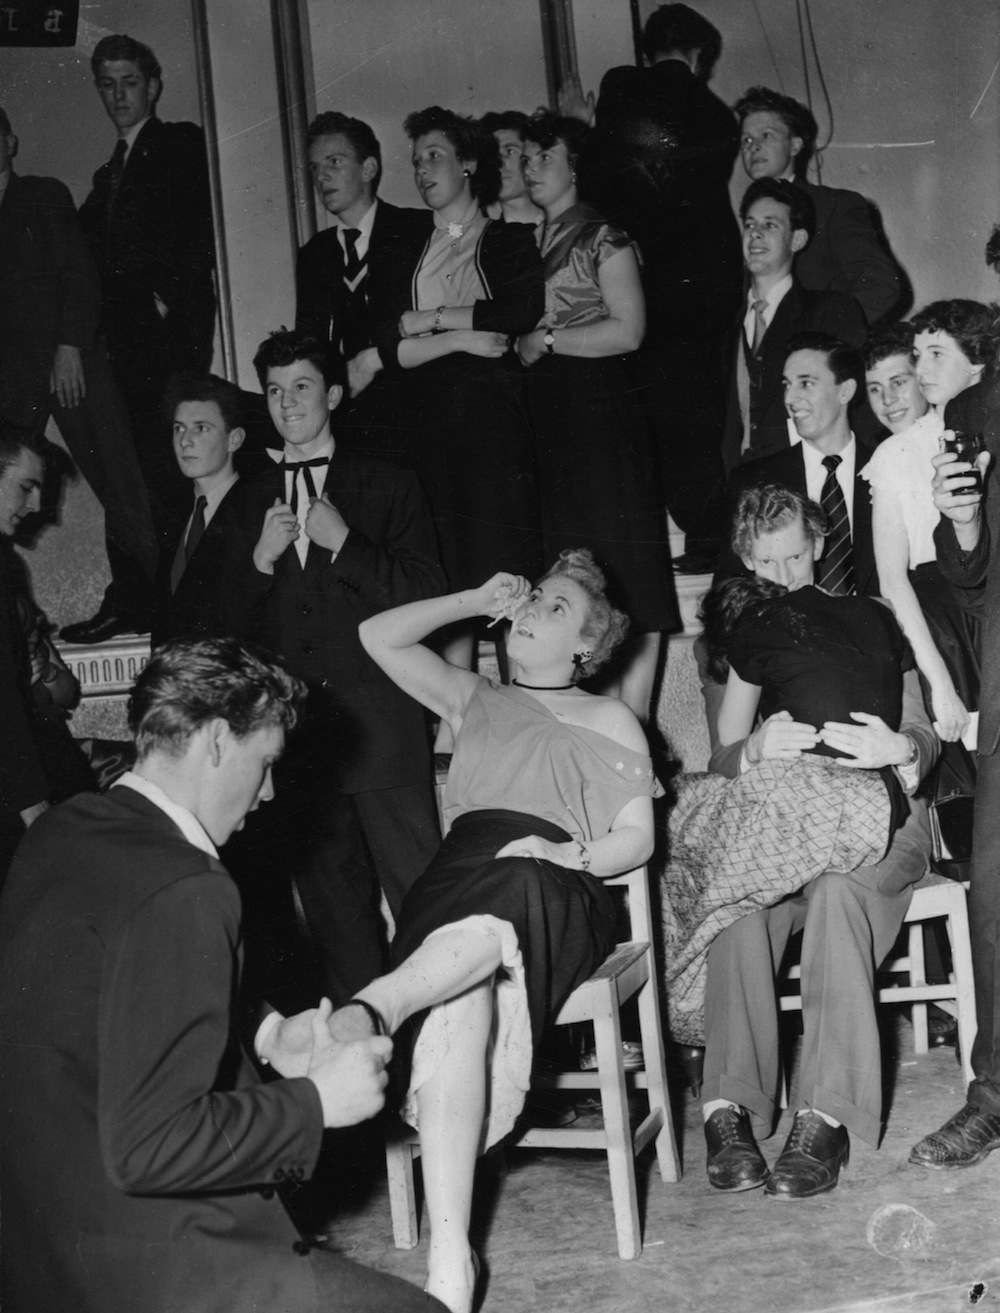 18th February 1954:  Jazz fans collapsed onto chairs, overcome with emotion, at a crowded dance hall where their idols of song Ted Heath, Dickie Valentine and Lita Roza are performing.  (Photo by Keystone/Getty Images)